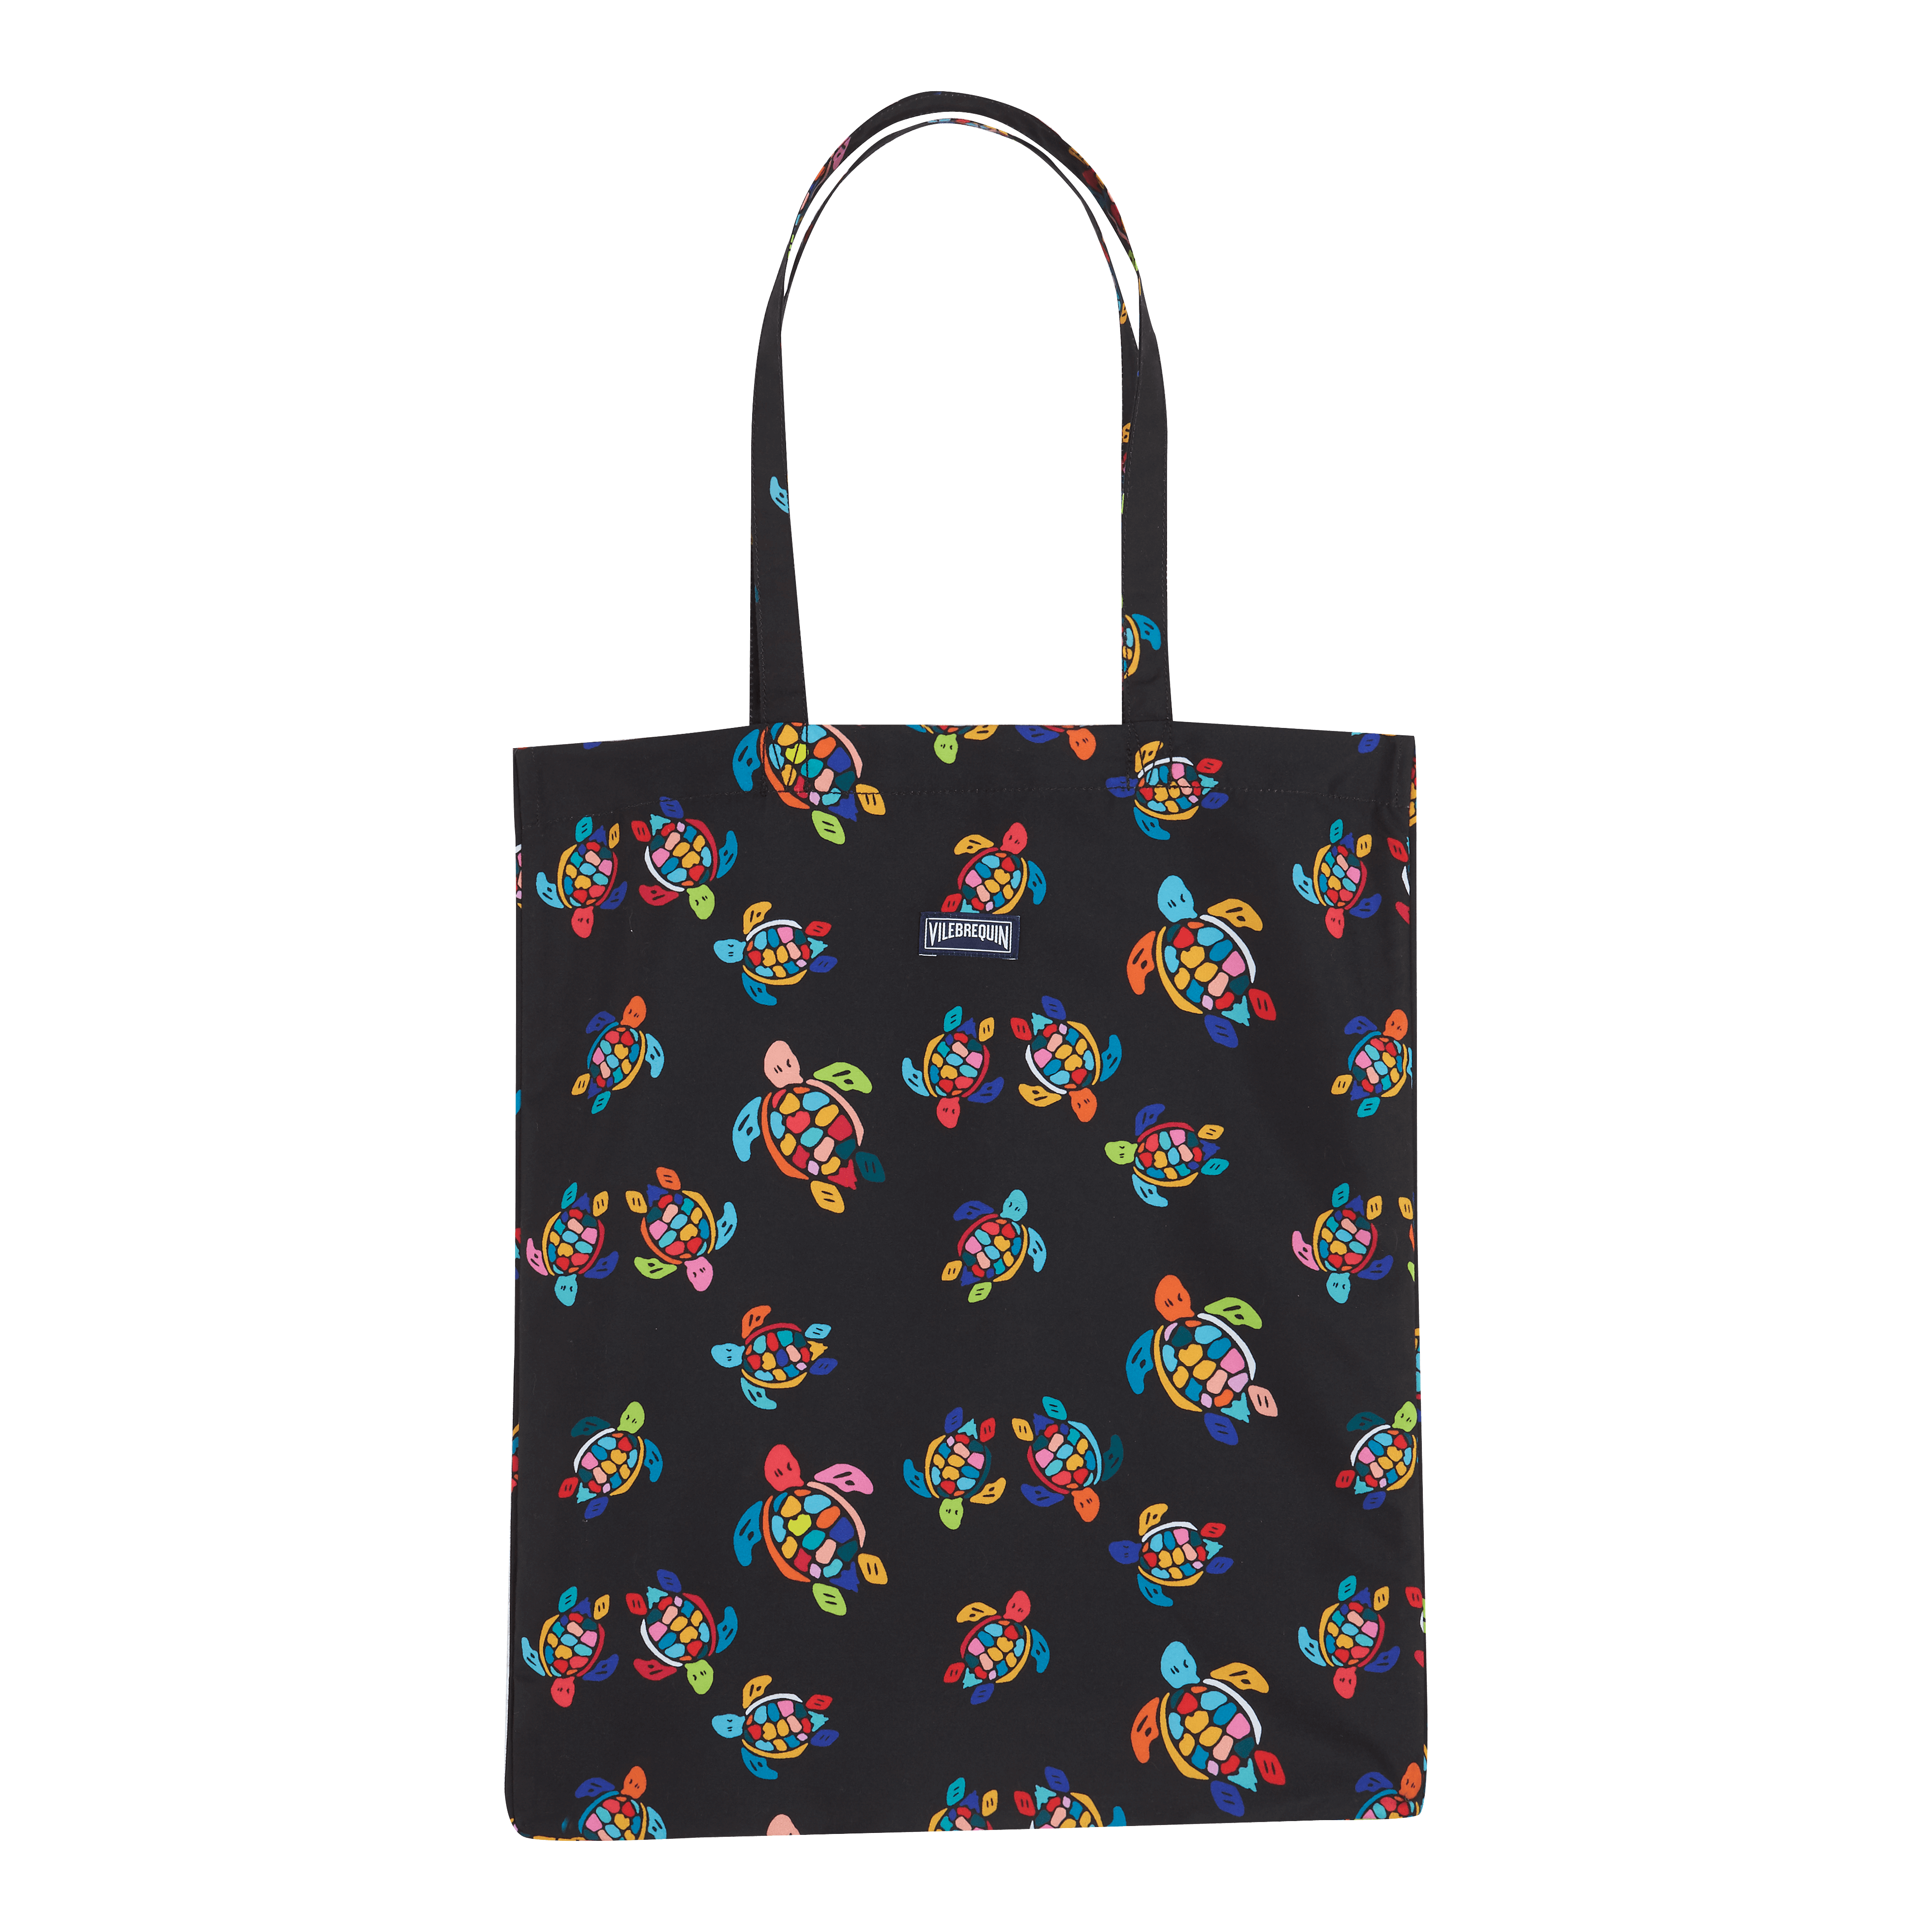 Vilebrequin Tote Bag Over The Rainbow Turtles In Black